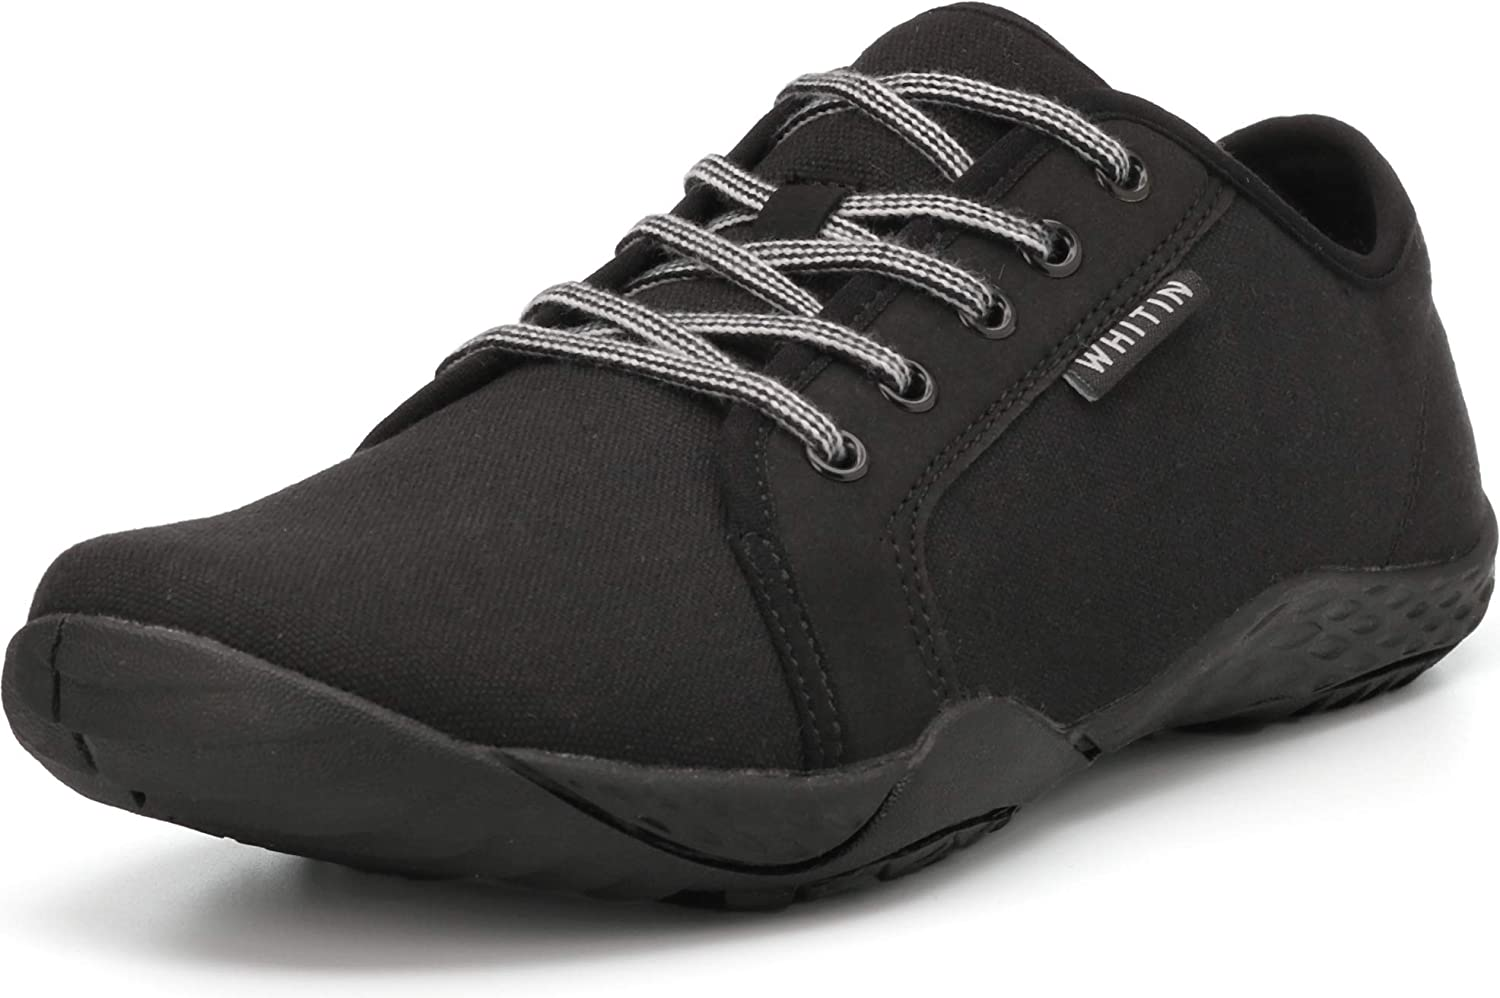 WHITIN Mens Canvas Barefoot Sneakers Arch Support Wide fit Zero Drop Sole